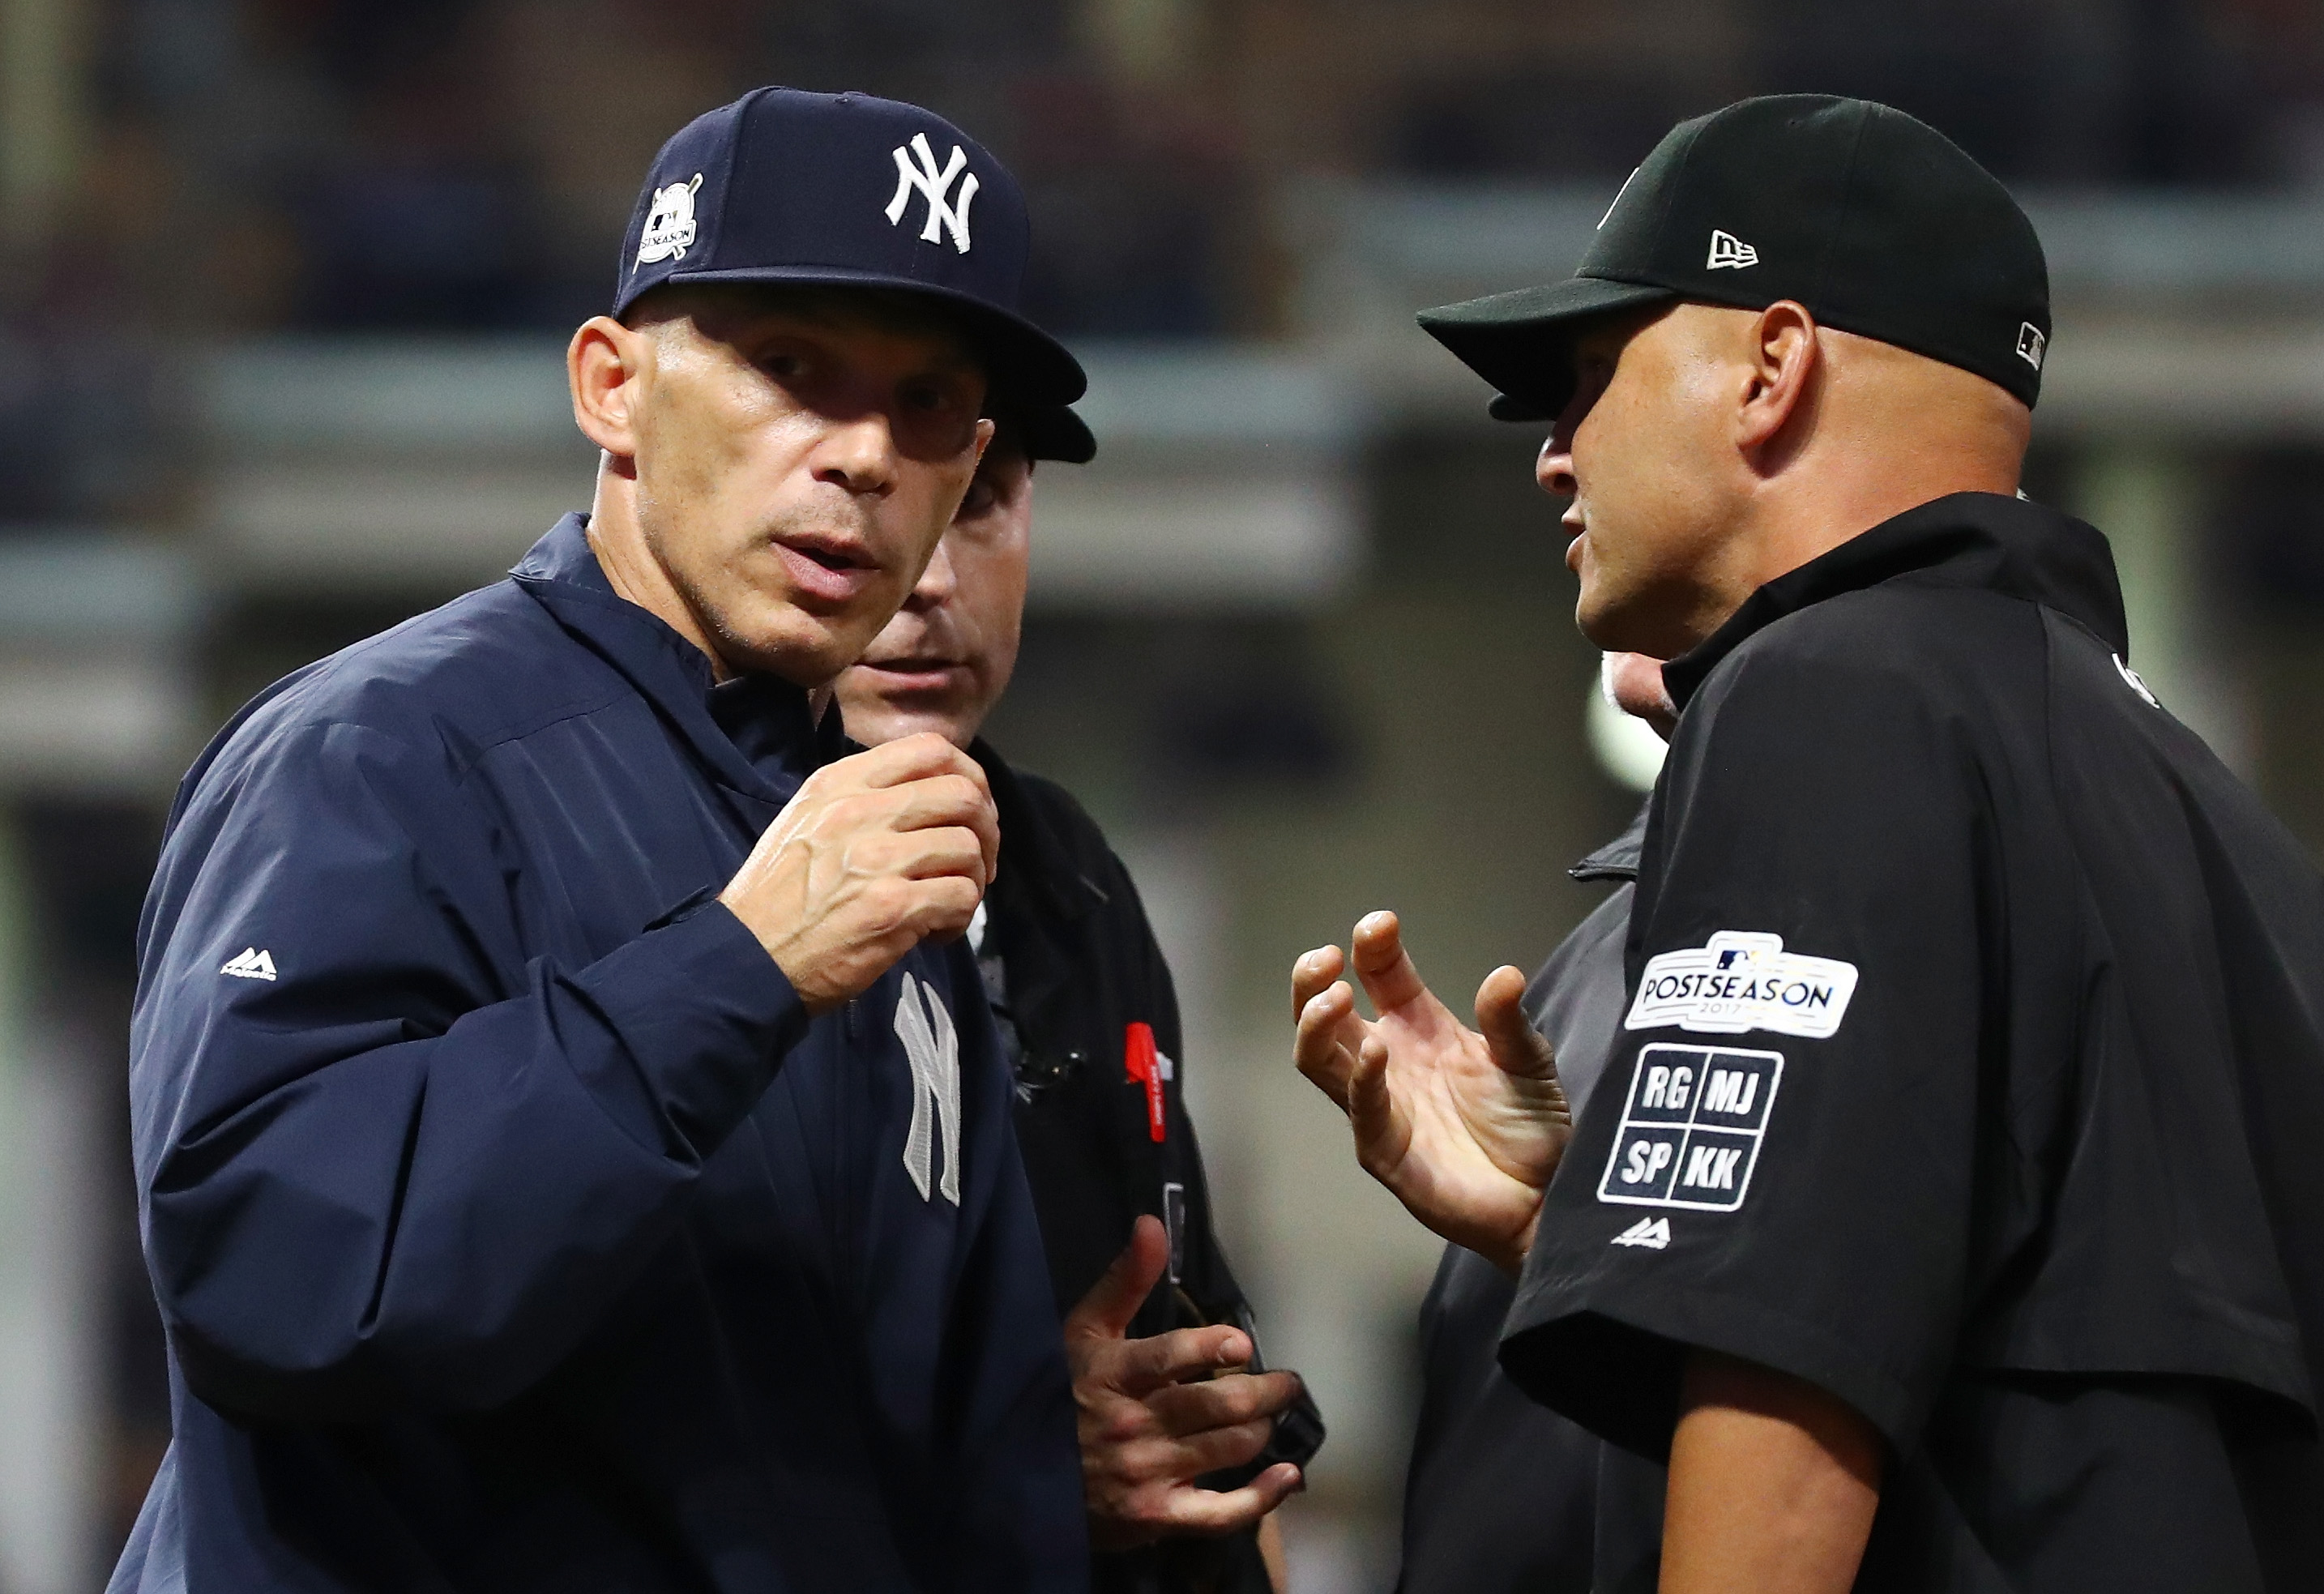 Joe Girardi on Yankees' Future After Contract: 'Whatever Happens, Happens'